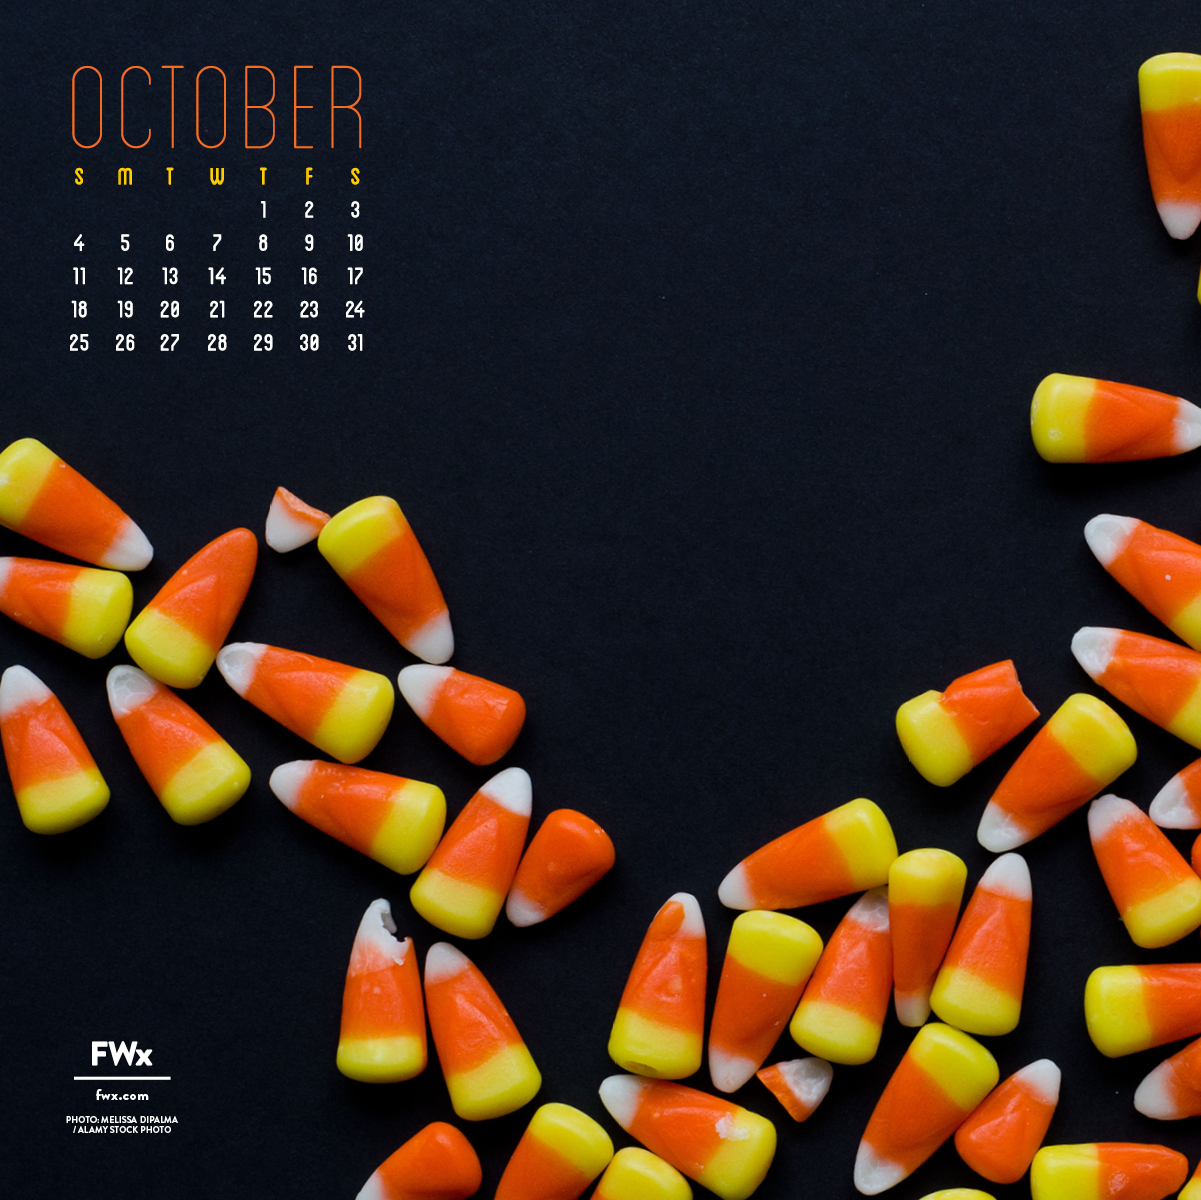 Bring on The Sugar Rush With FWx's October Wallpaper: Download Now